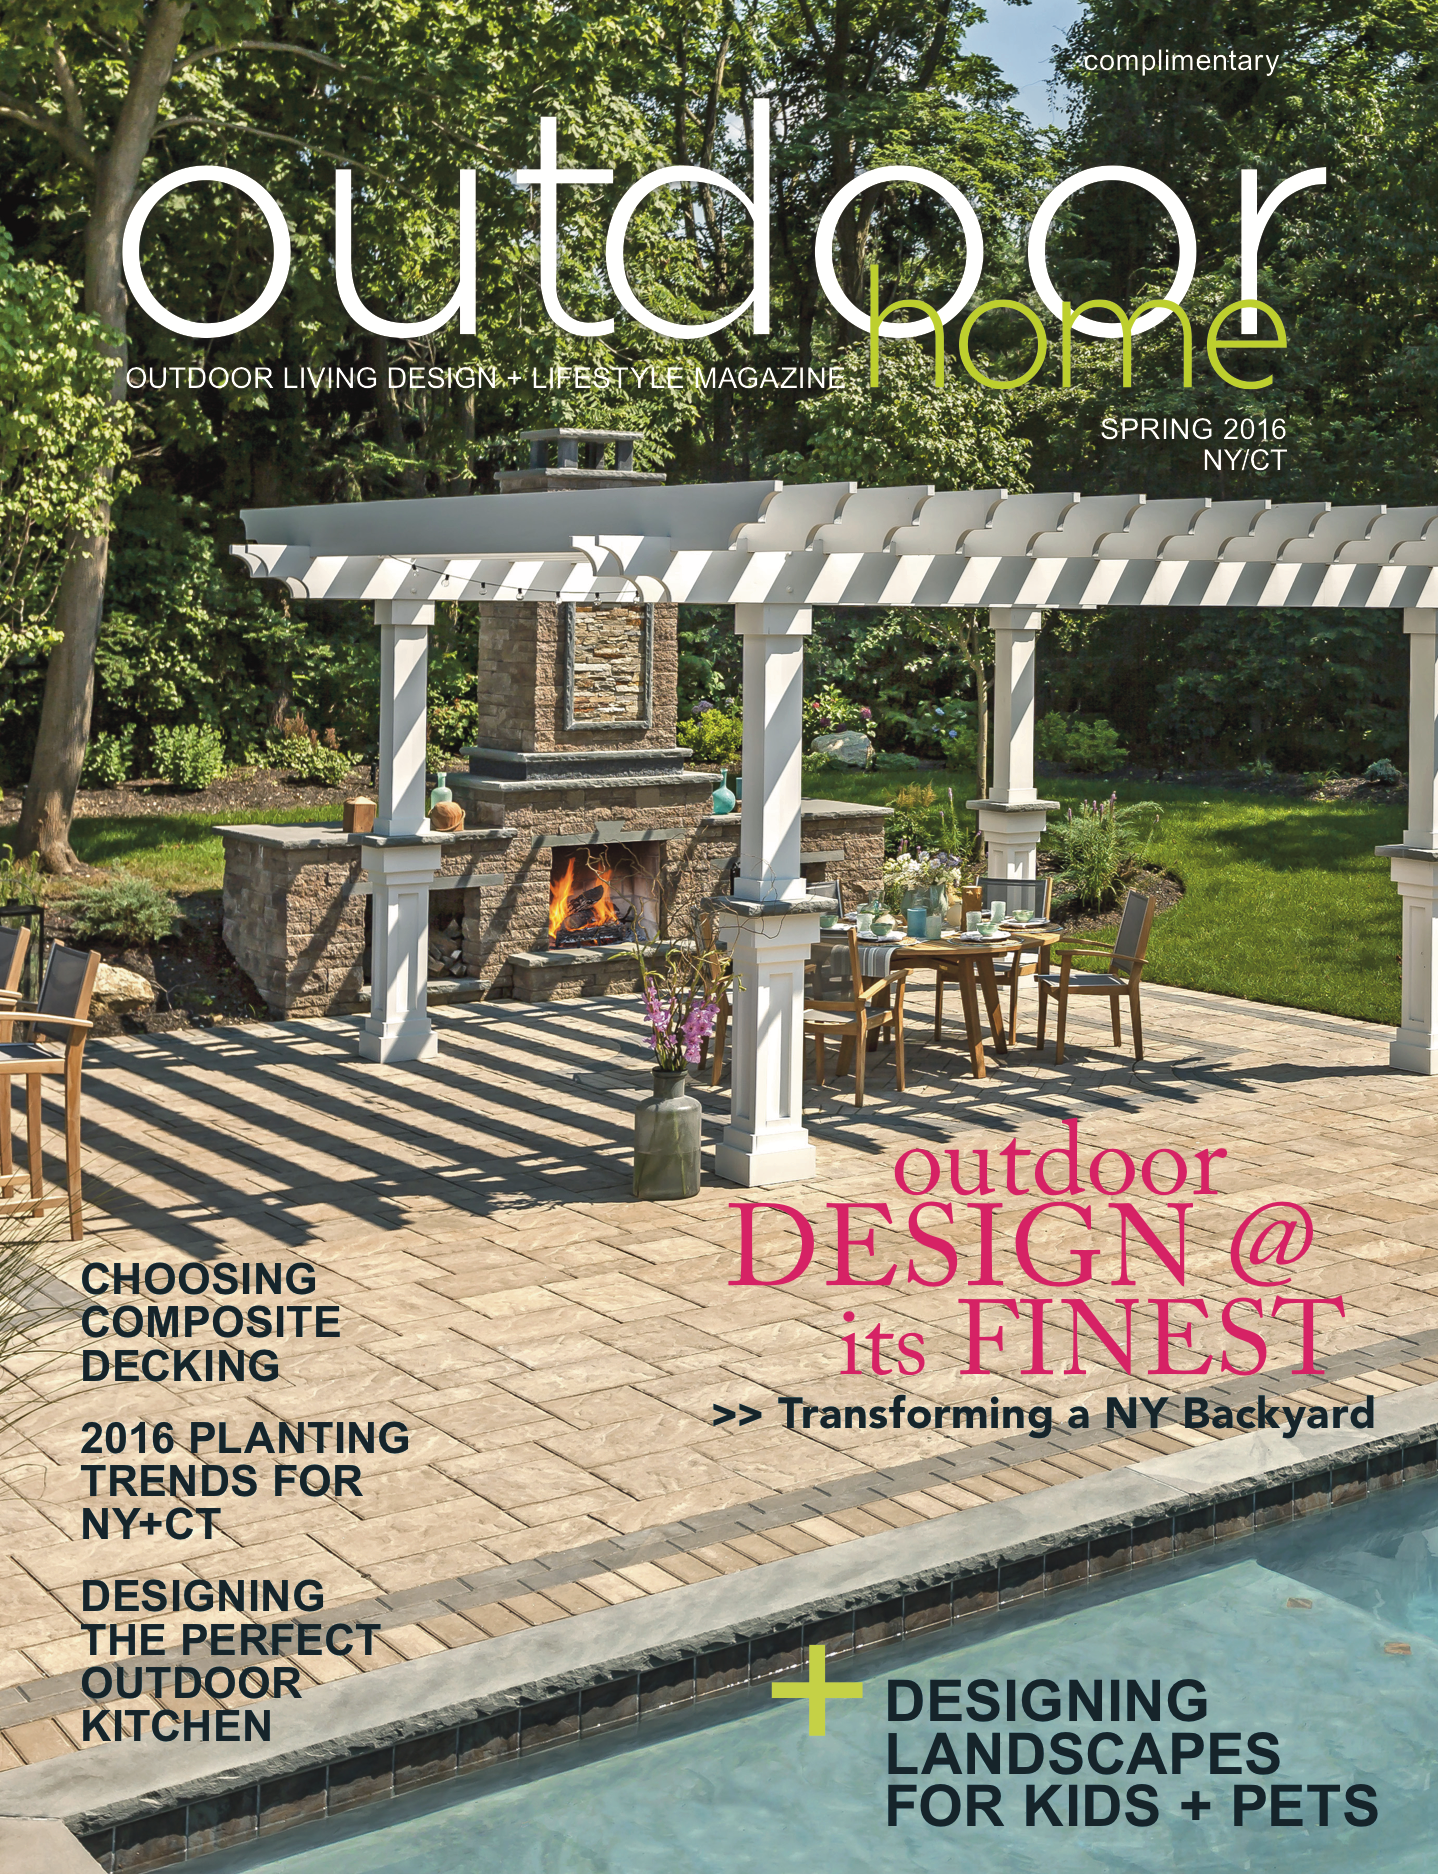 outdoor home magazine spring 2016 issue for westchester, putnam, dutchess, orange, fairfield, & litchfield counties